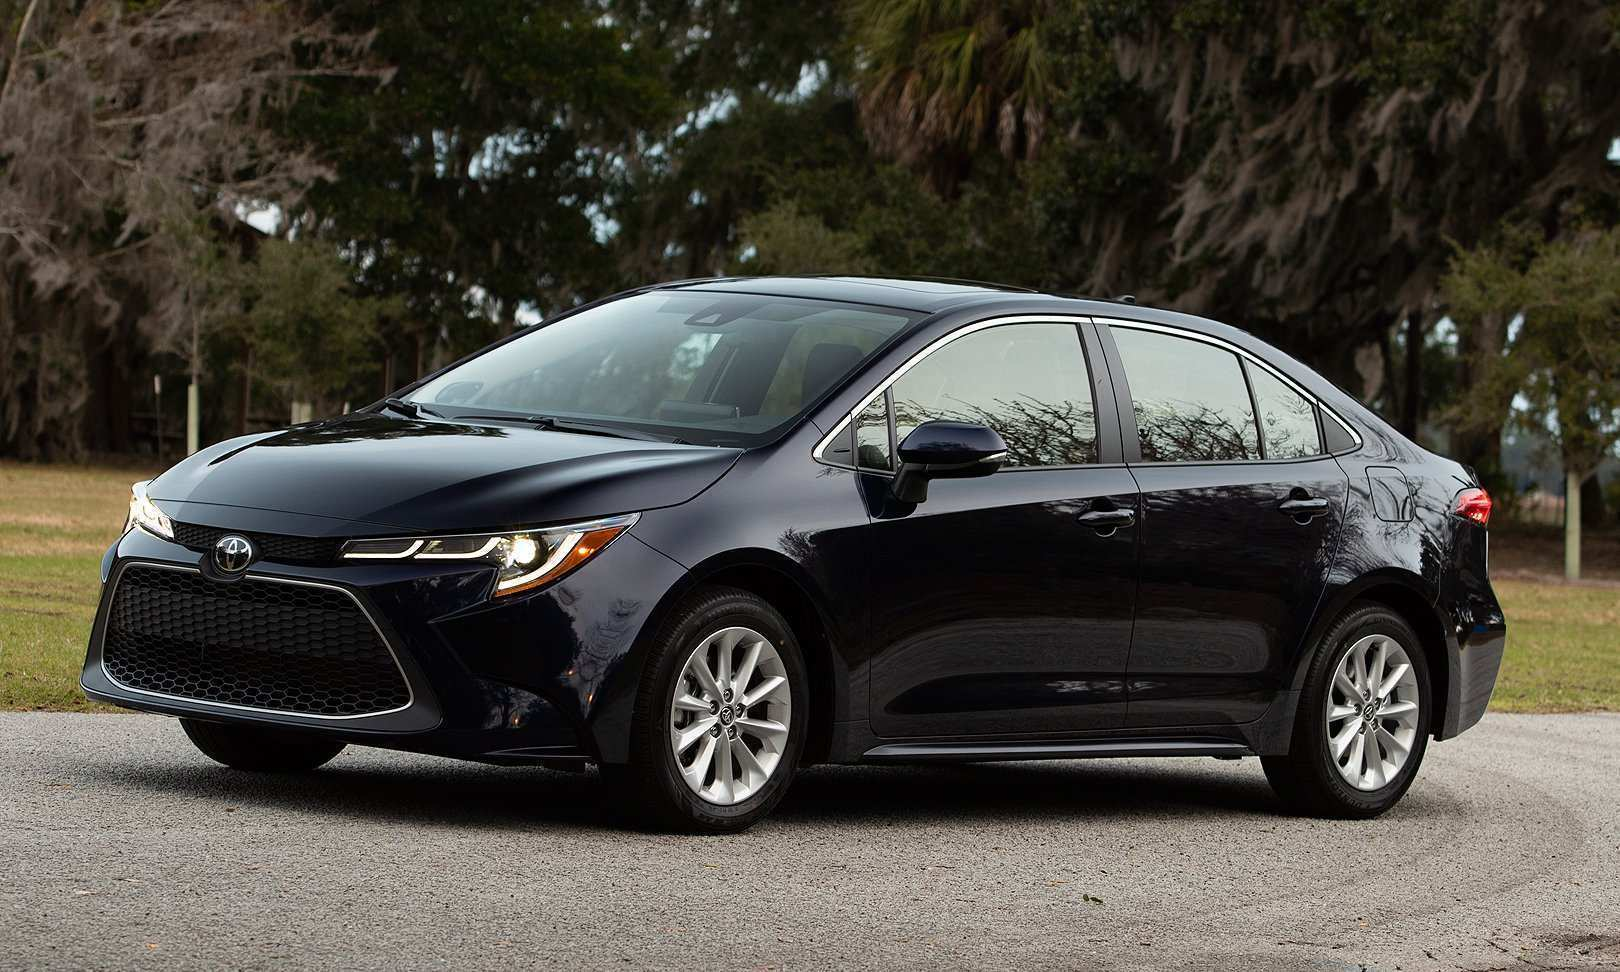 53 New Toyota Corolla 2020 Price Configurations